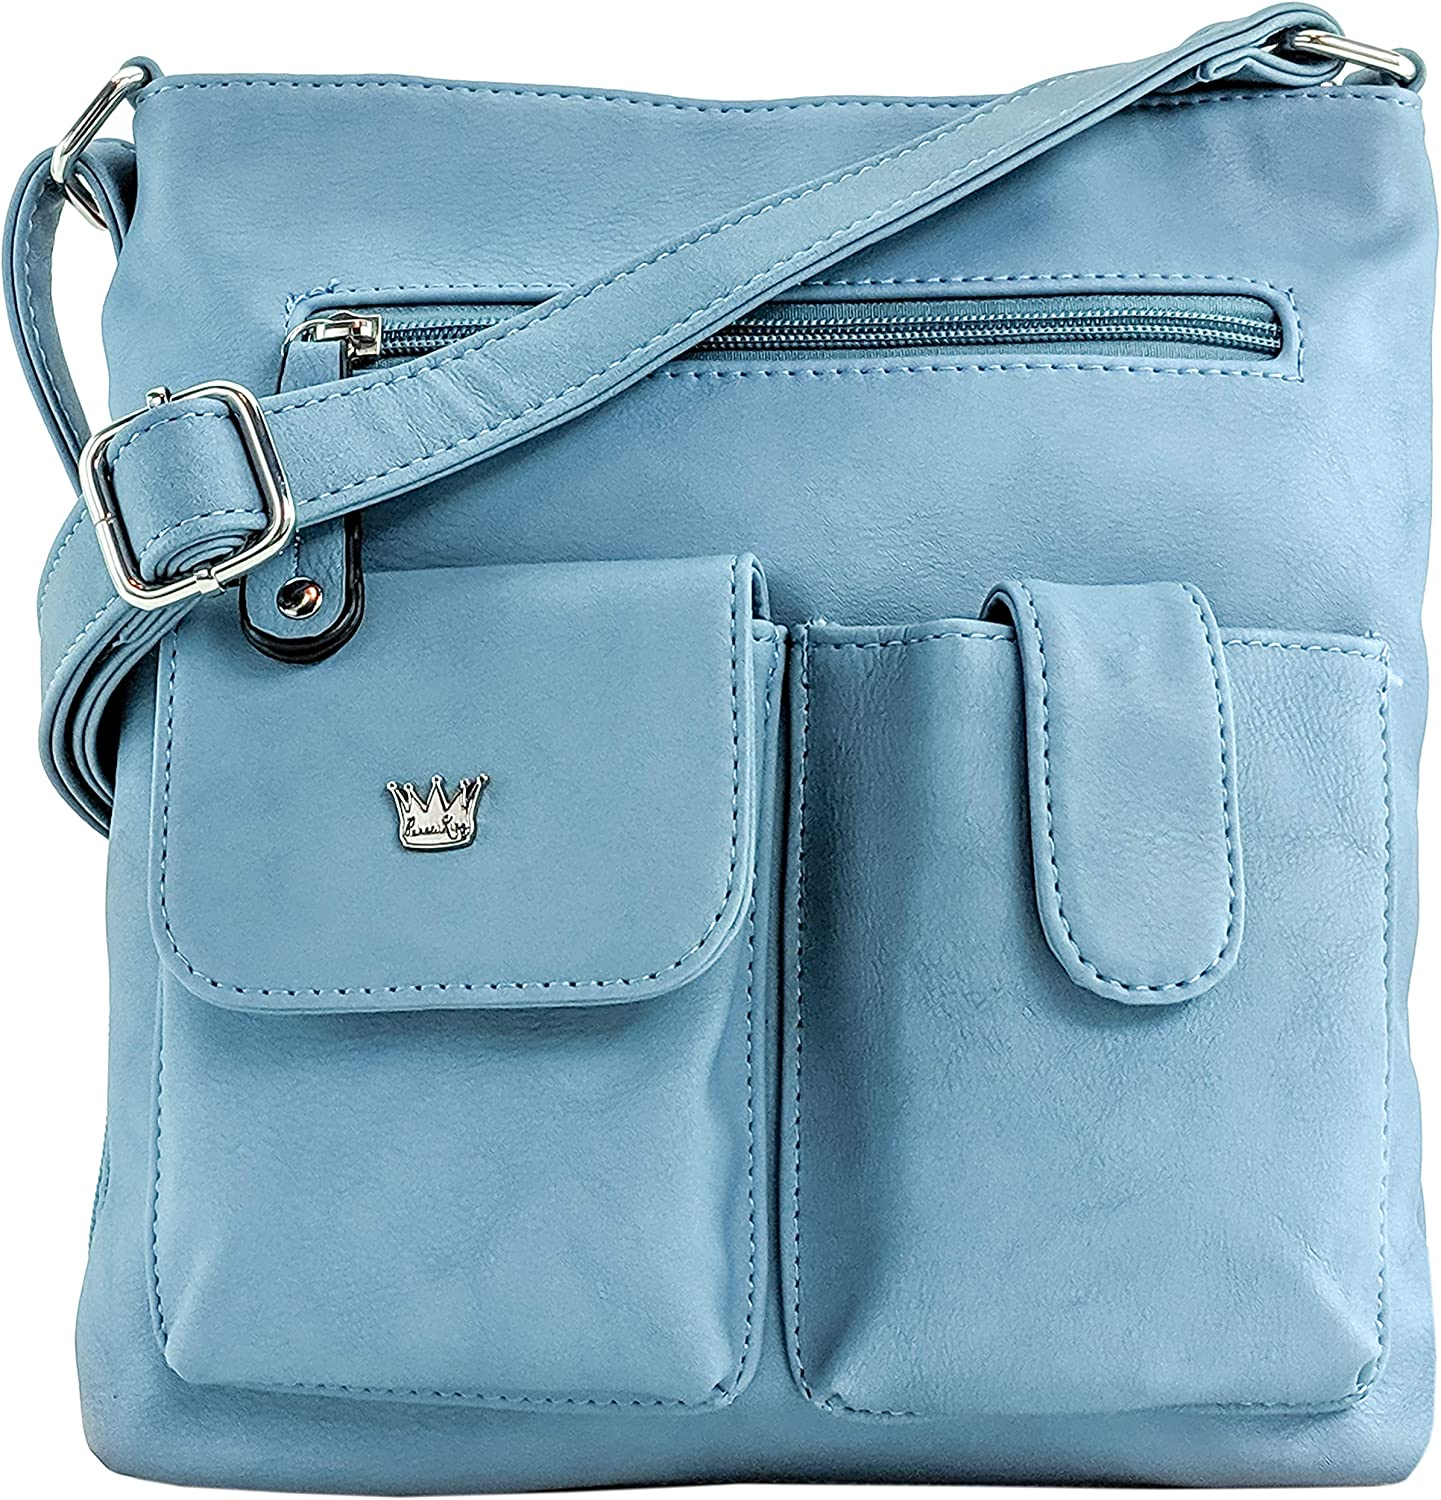 Limited time cheap sale Purse King Colt CCW Concealed Crossbody Handbag Ranking TOP2 Conceal Carry